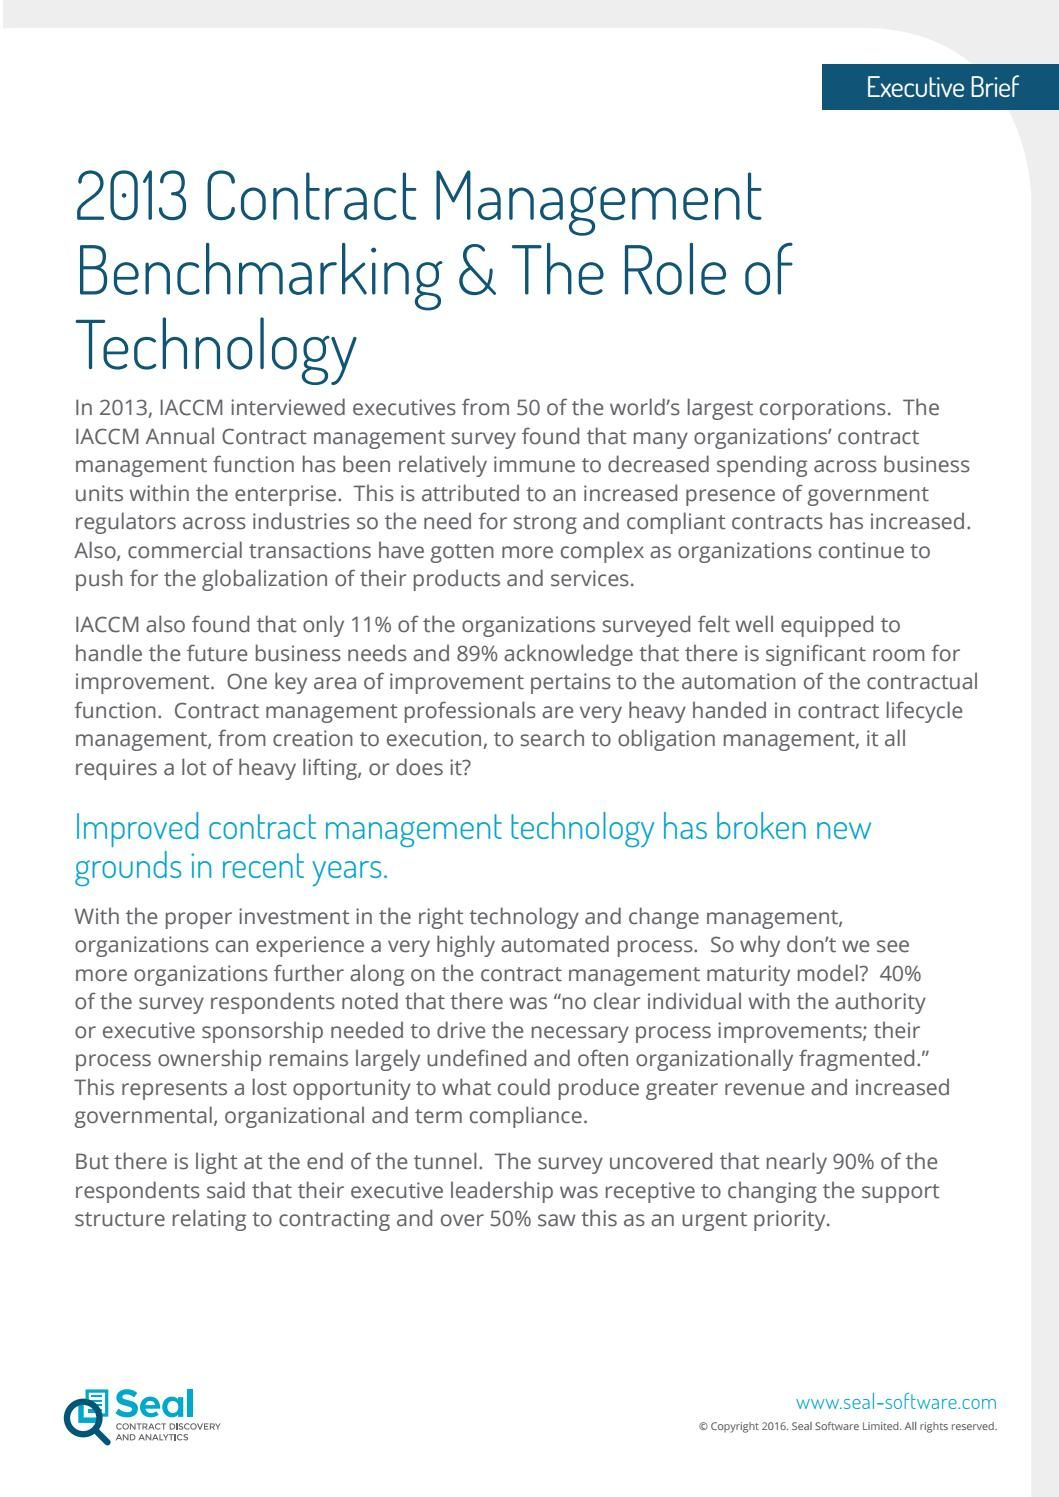 Contract Management Benchmarking And The Role Of Technology